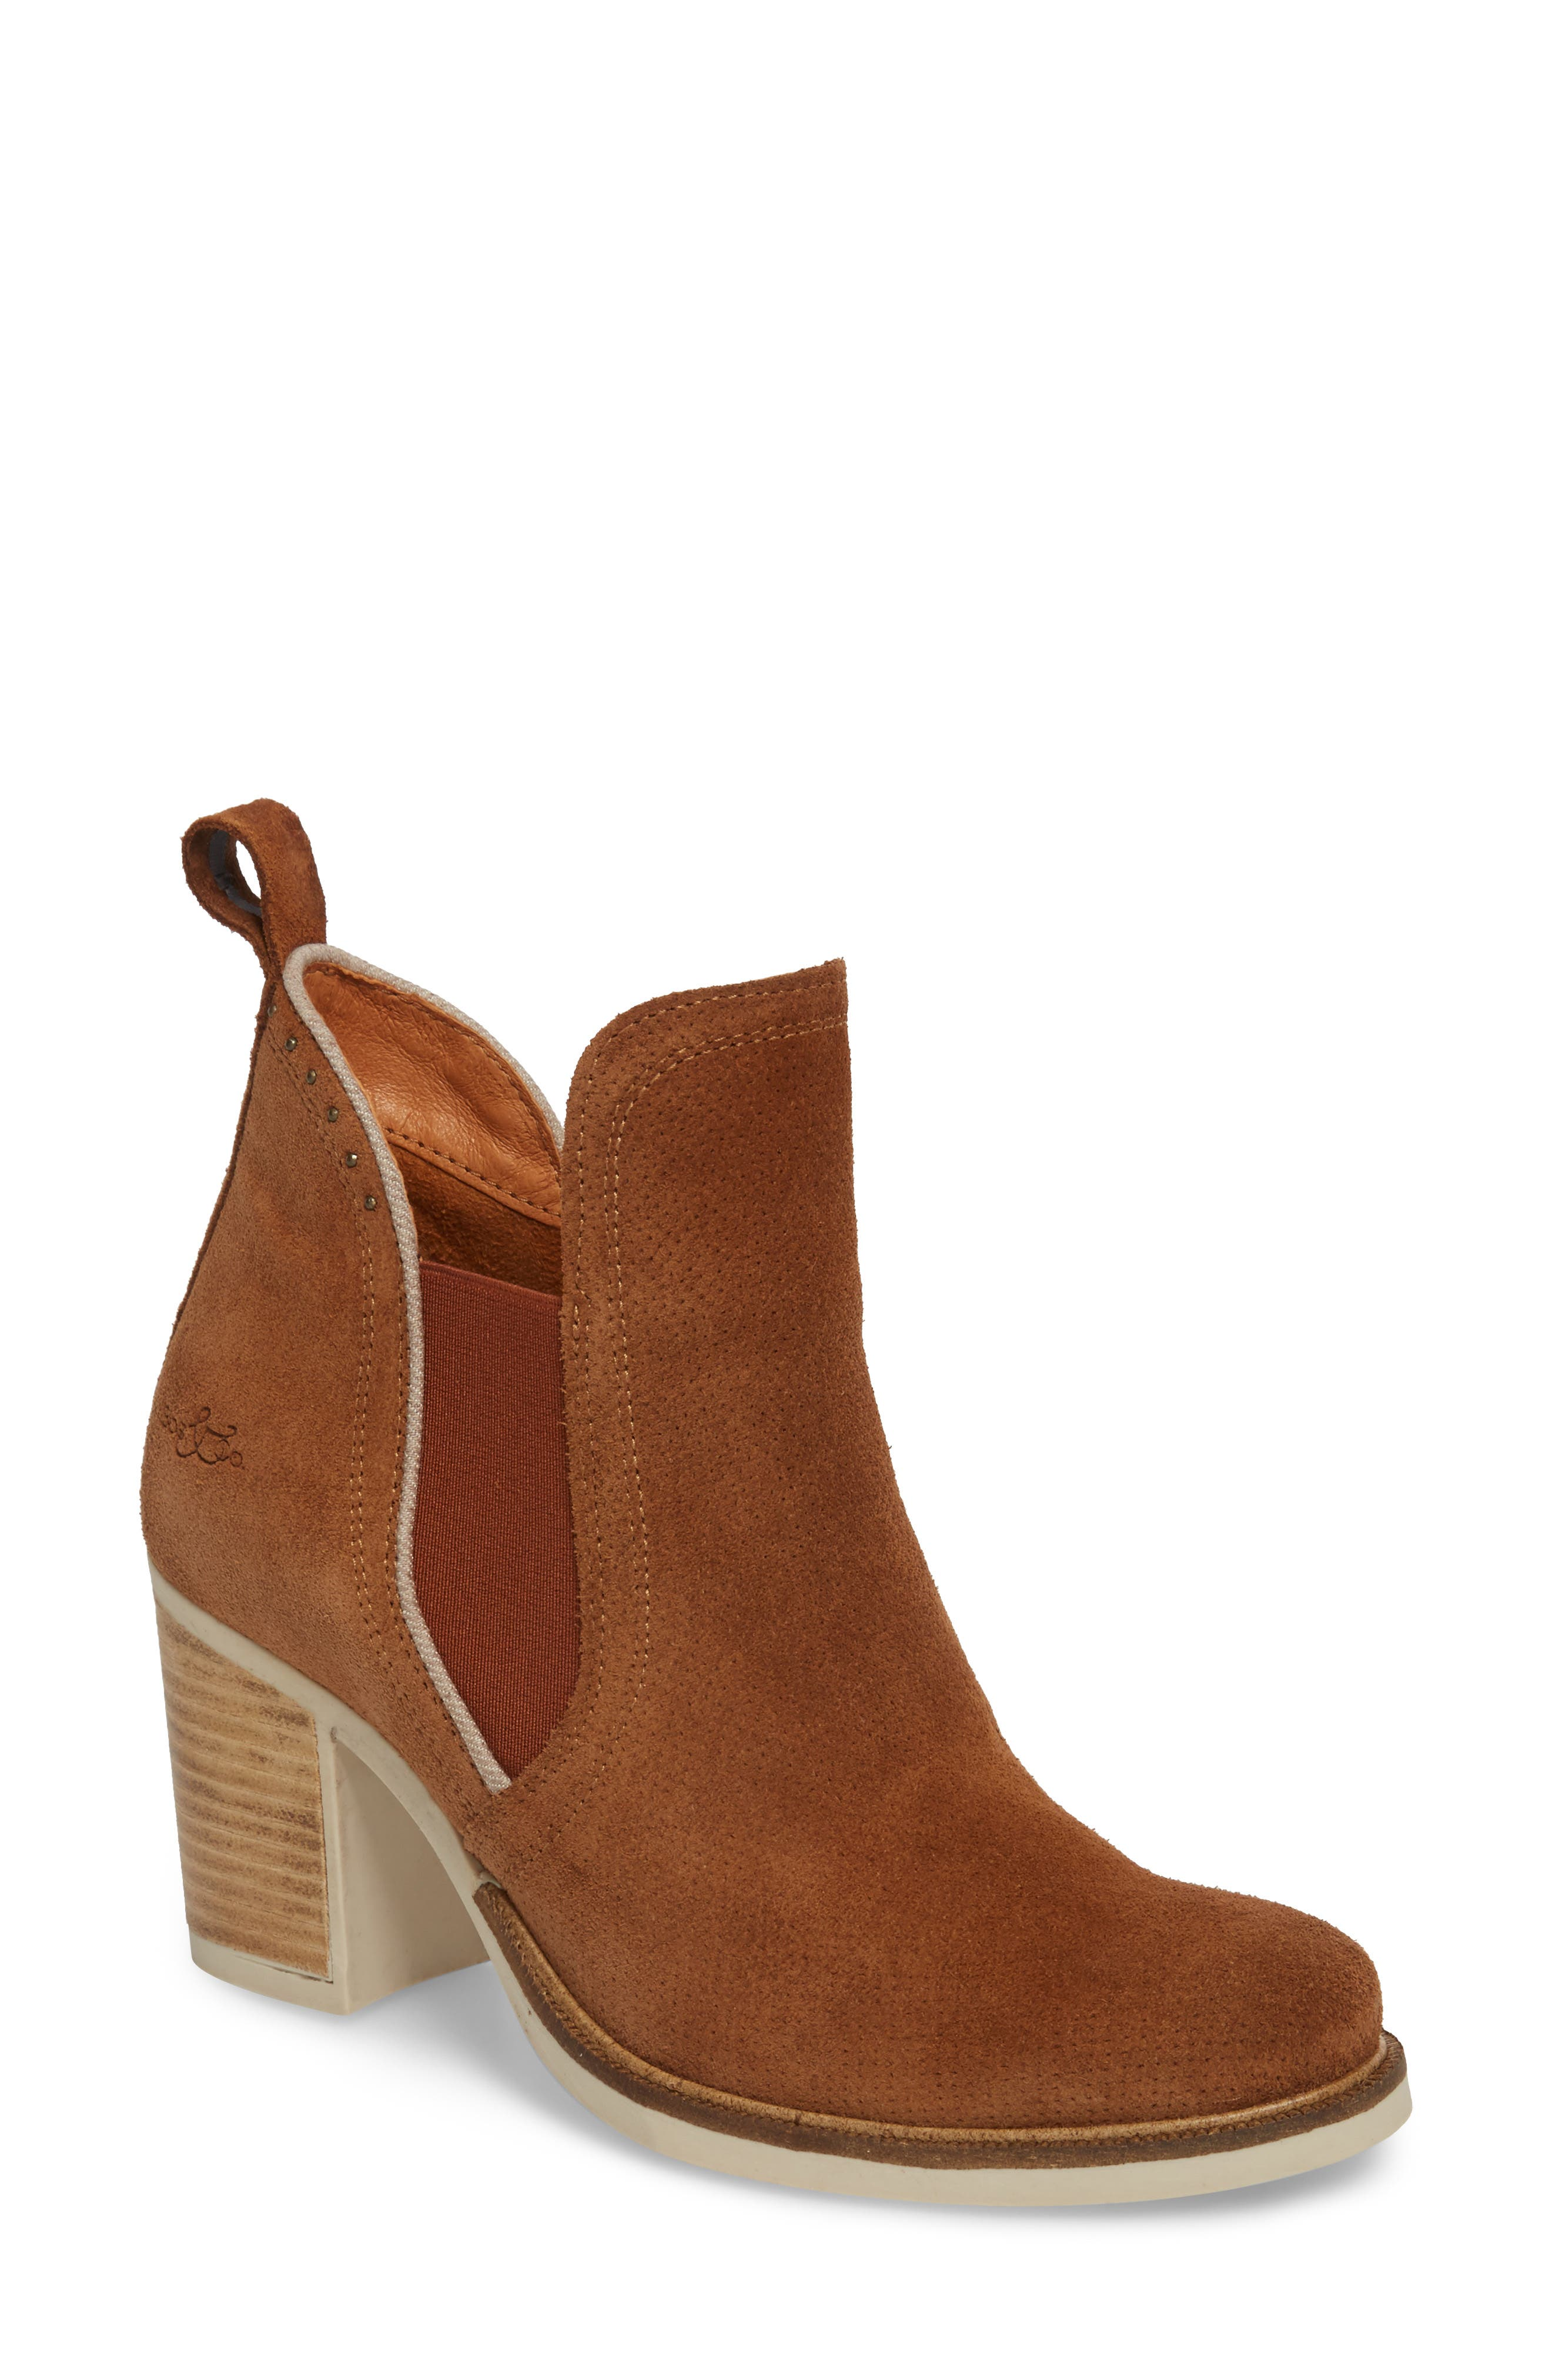 Breves Boot,                         Main,                         color, WHISKY/ BEIGE SUEDE